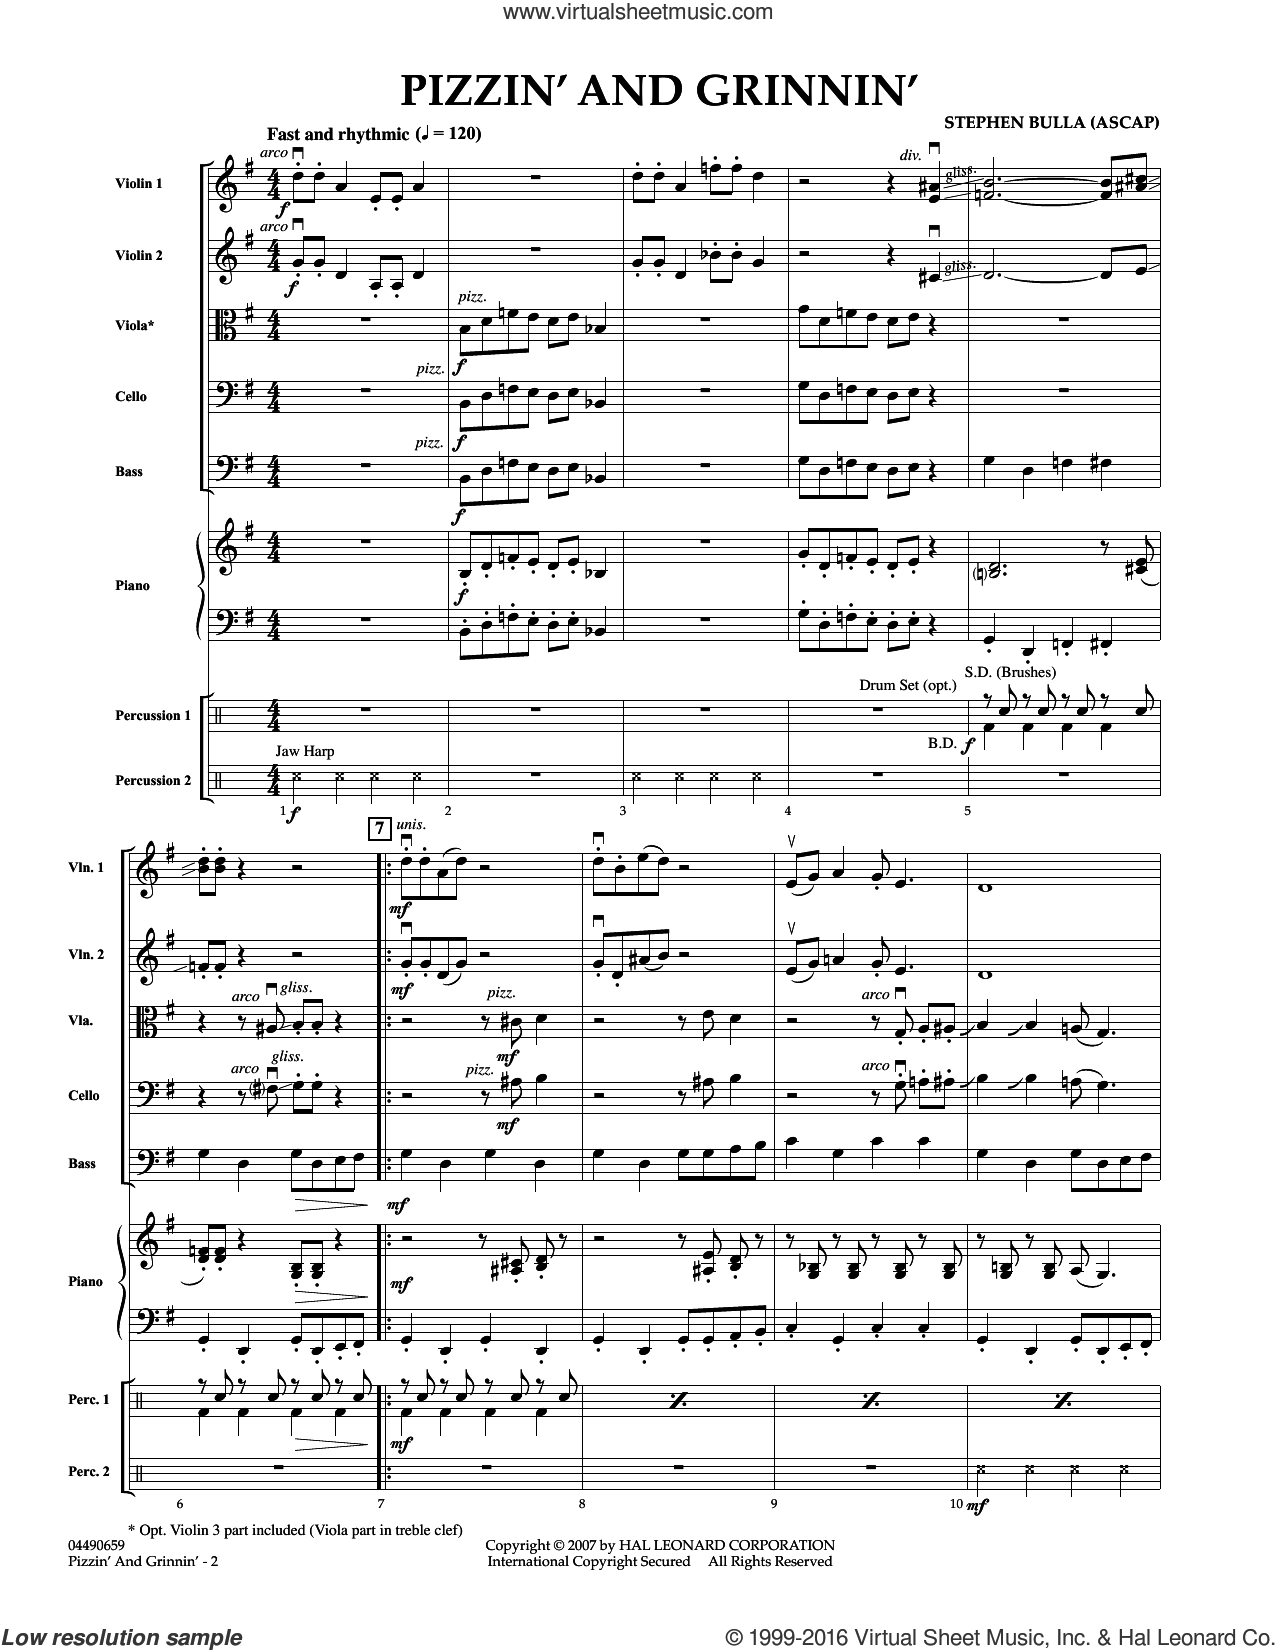 Pizzin' and Grinnin' (COMPLETE) sheet music for orchestra by Stephen Bulla